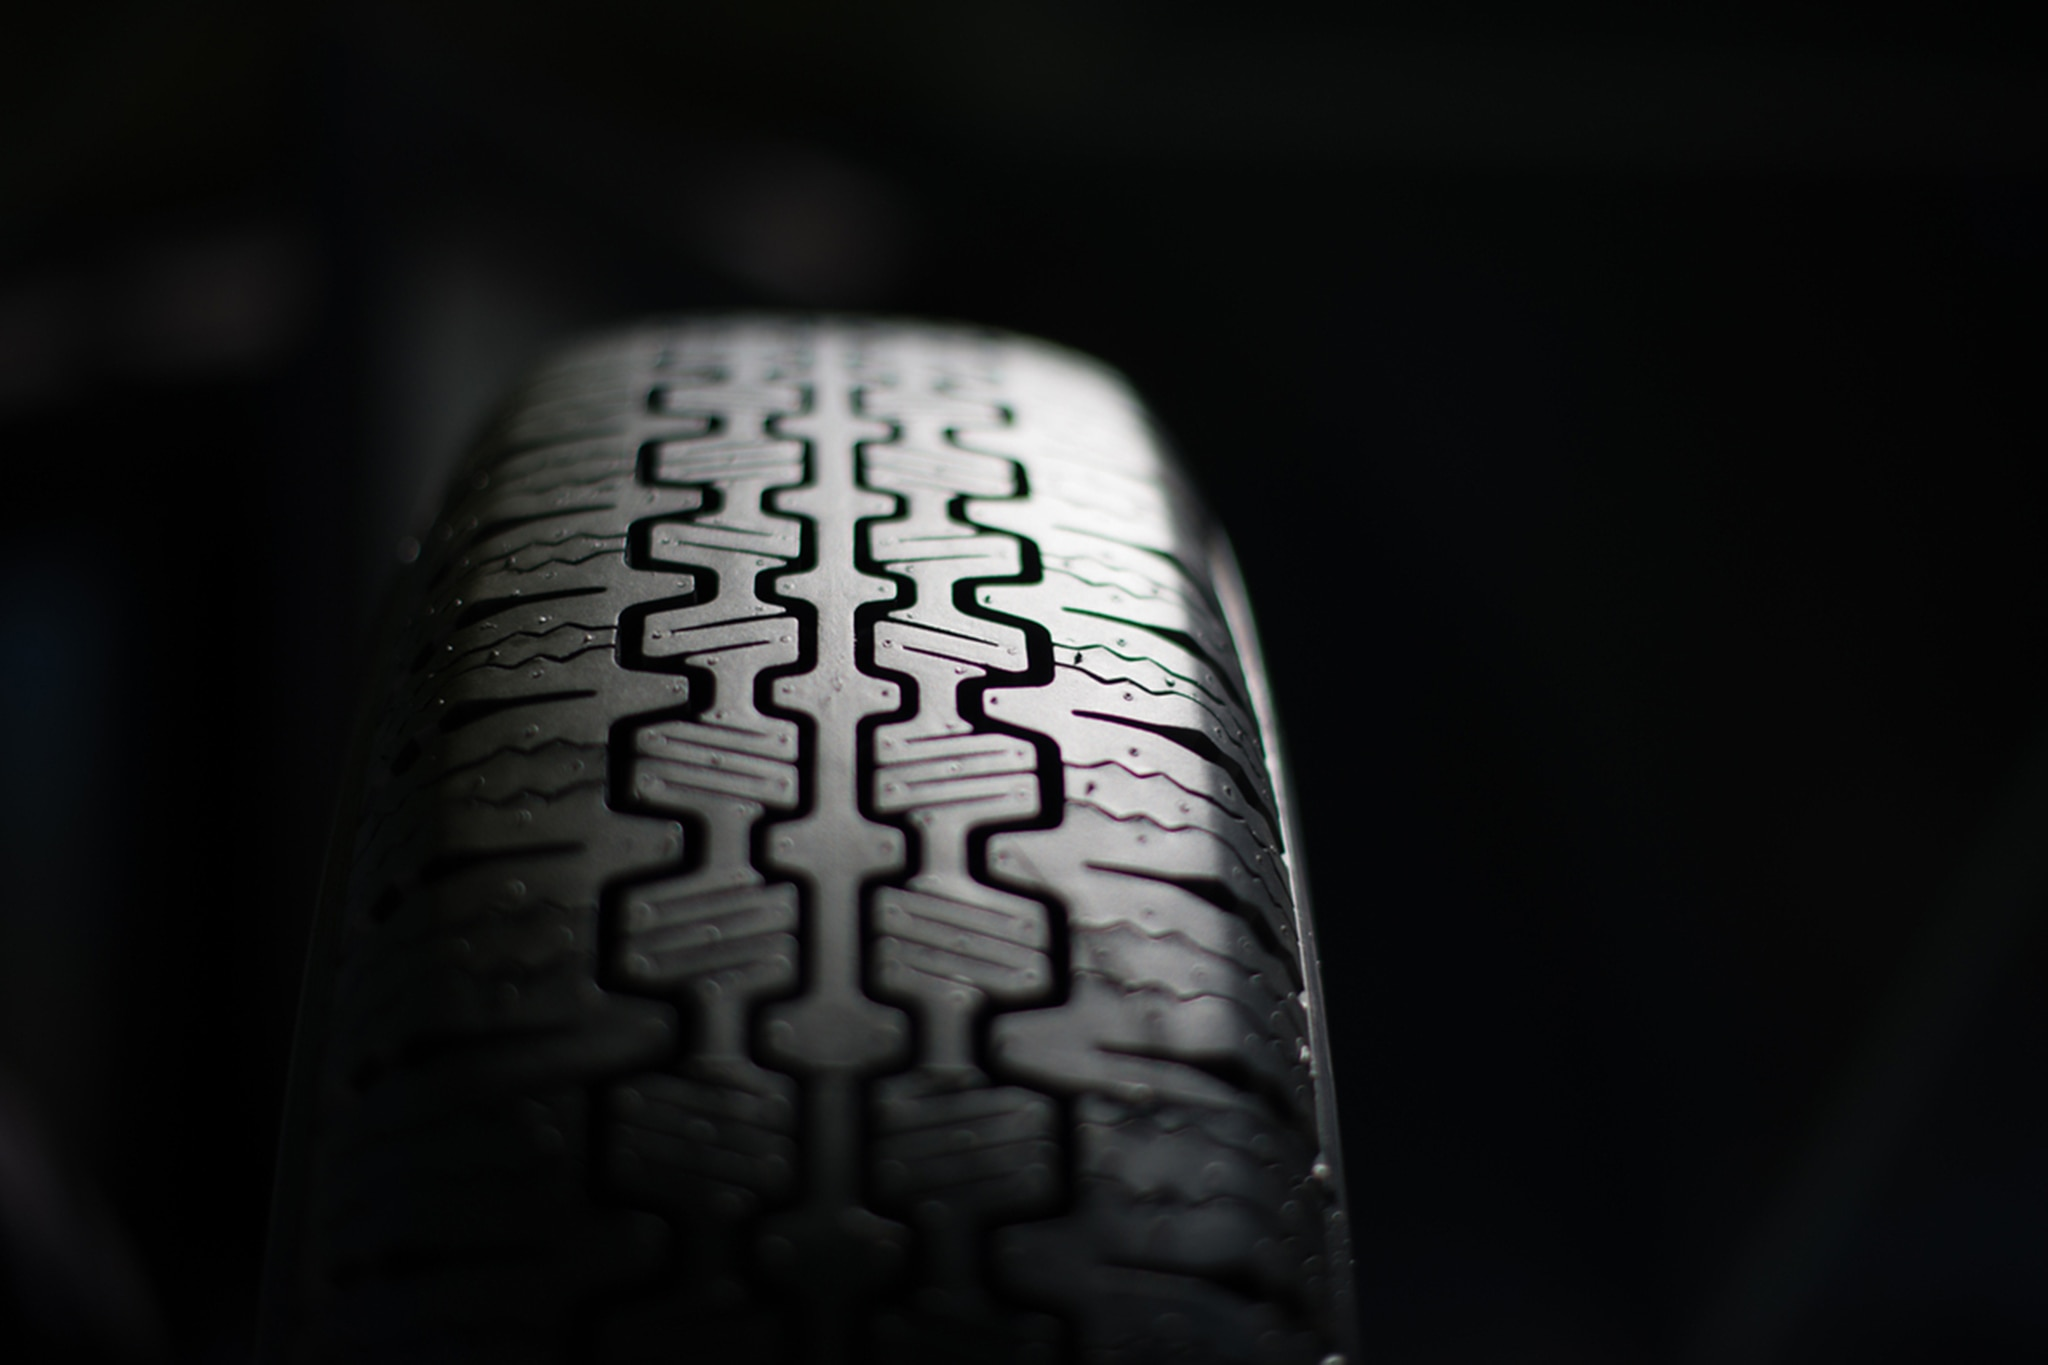 Pirelli Rolls Out New Rubber for Old Classics